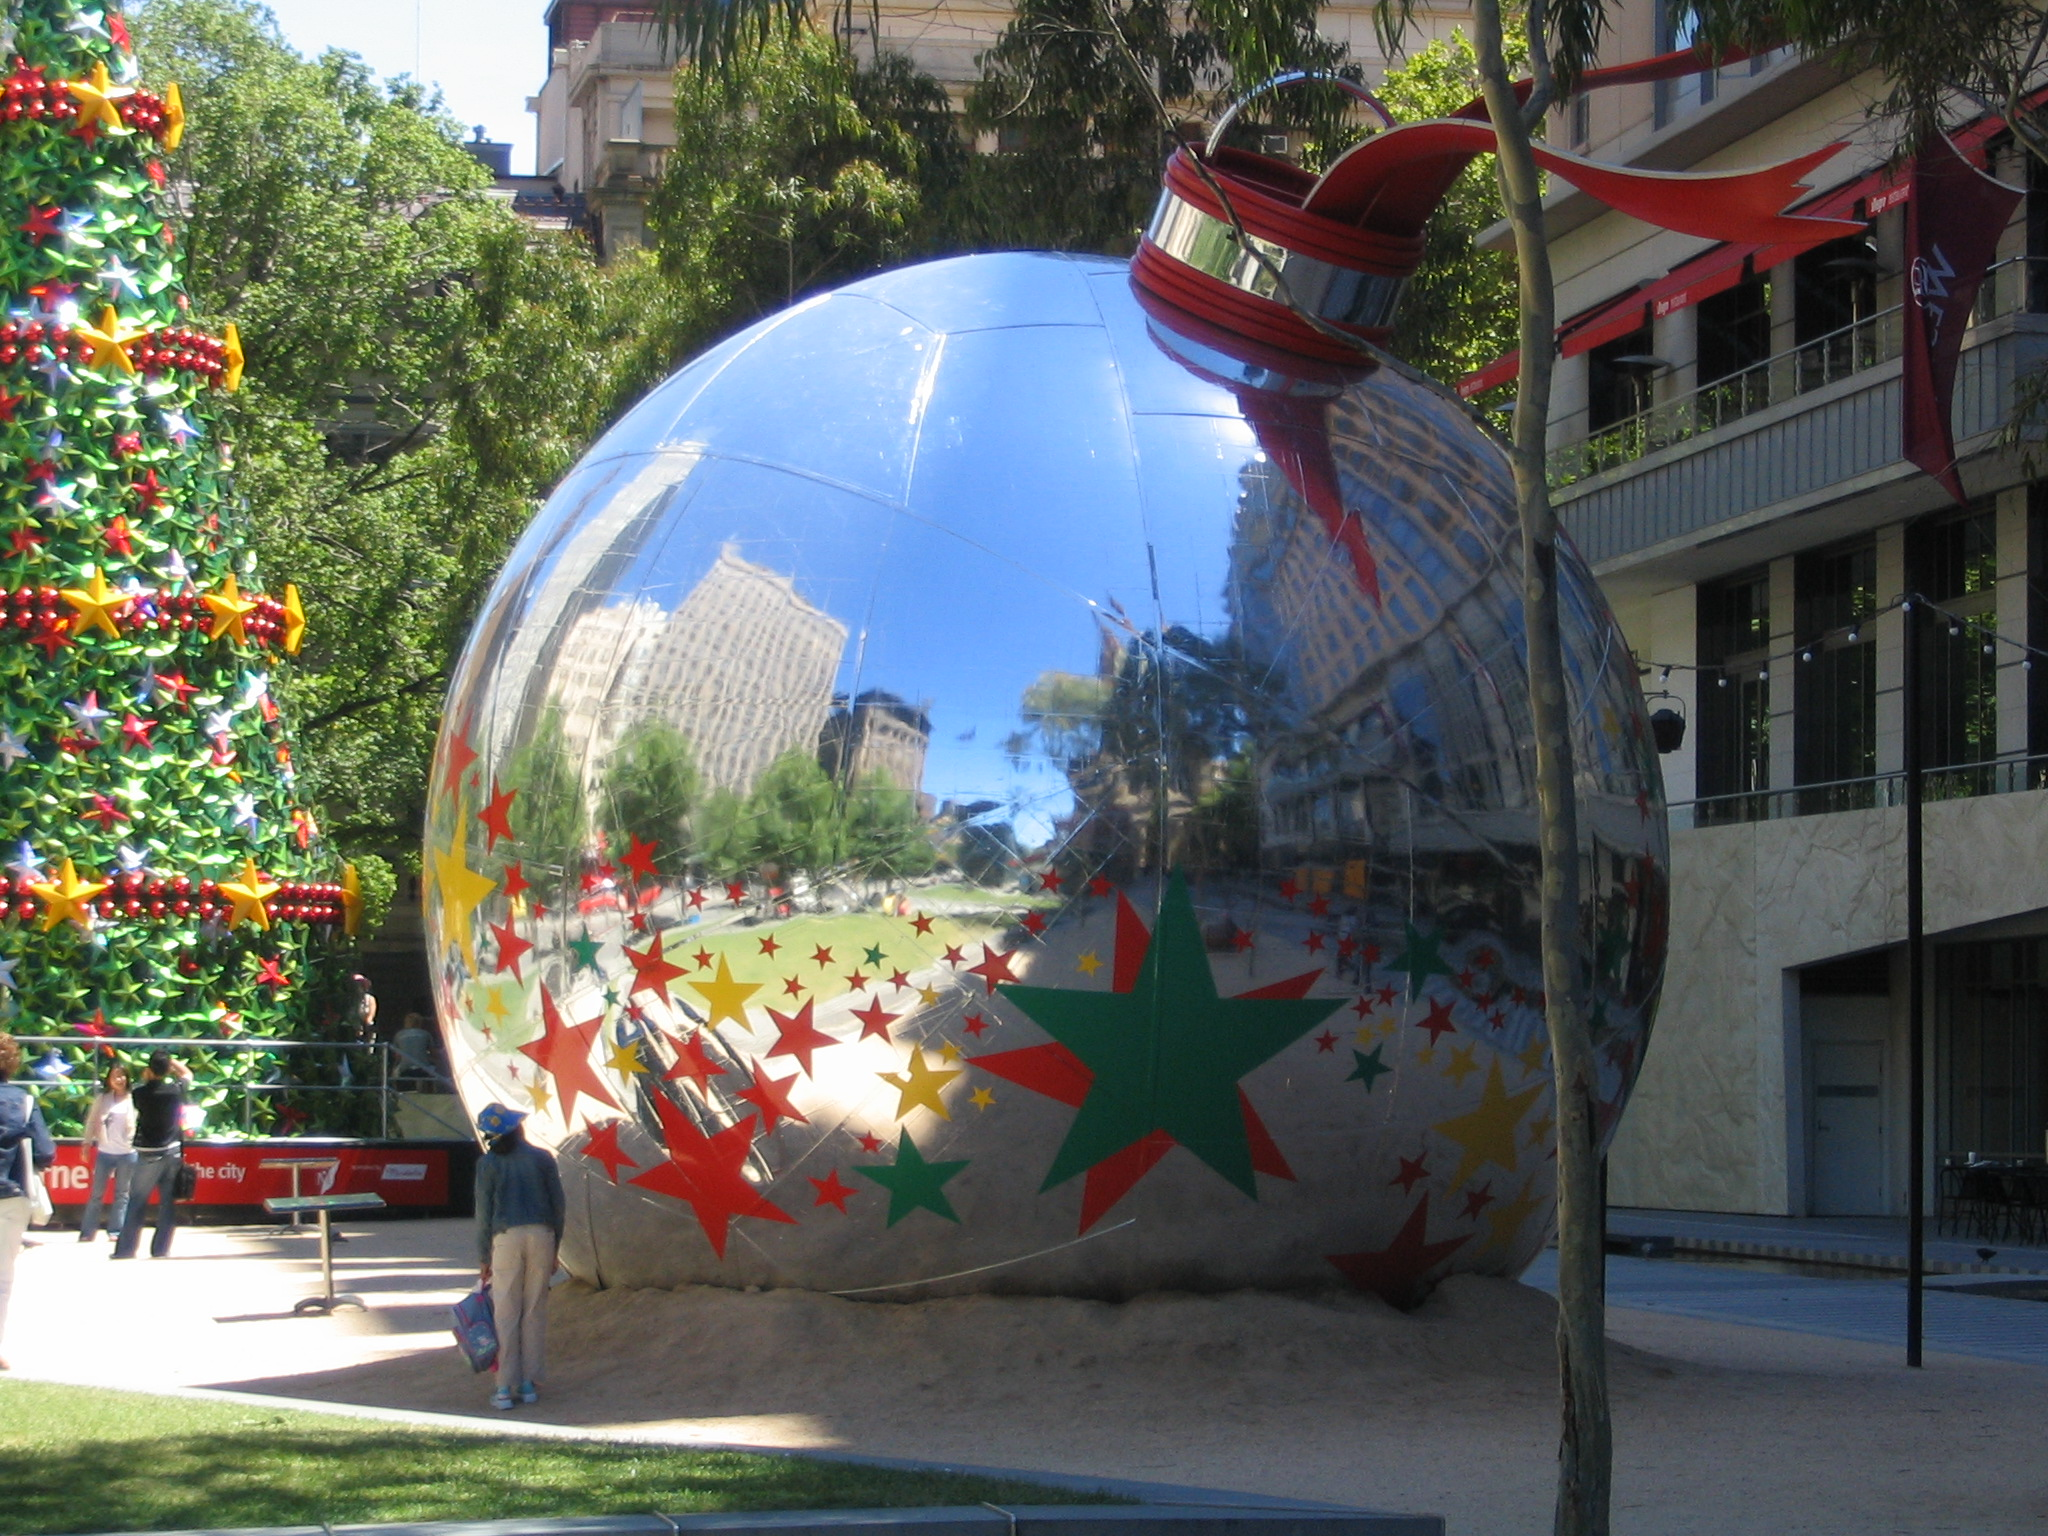 Christmas Bulb By Scott Sandars from Melbourne, Australia (Flickr) [CC-BY-SA-2.0 (http://creativecommons.org/licenses/by-sa/2.0)], via Wikimedia Commons